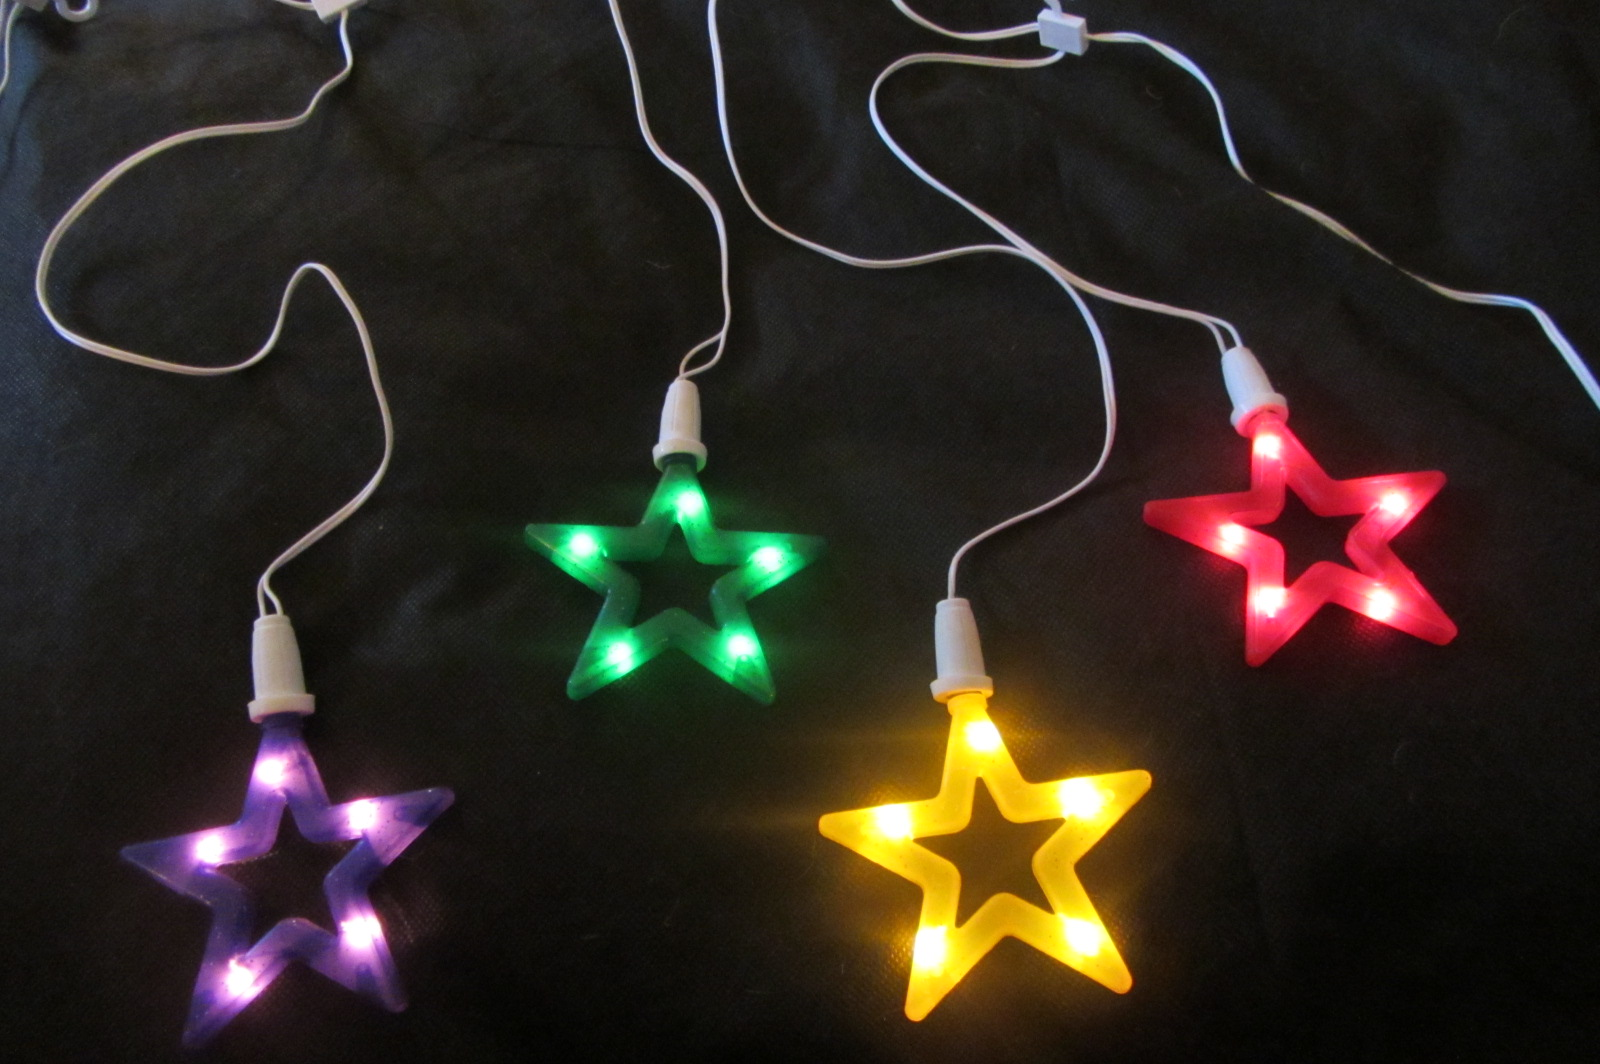 Multi colour 10 star curtain lights christmas decorations for Christmas window decorations clearance